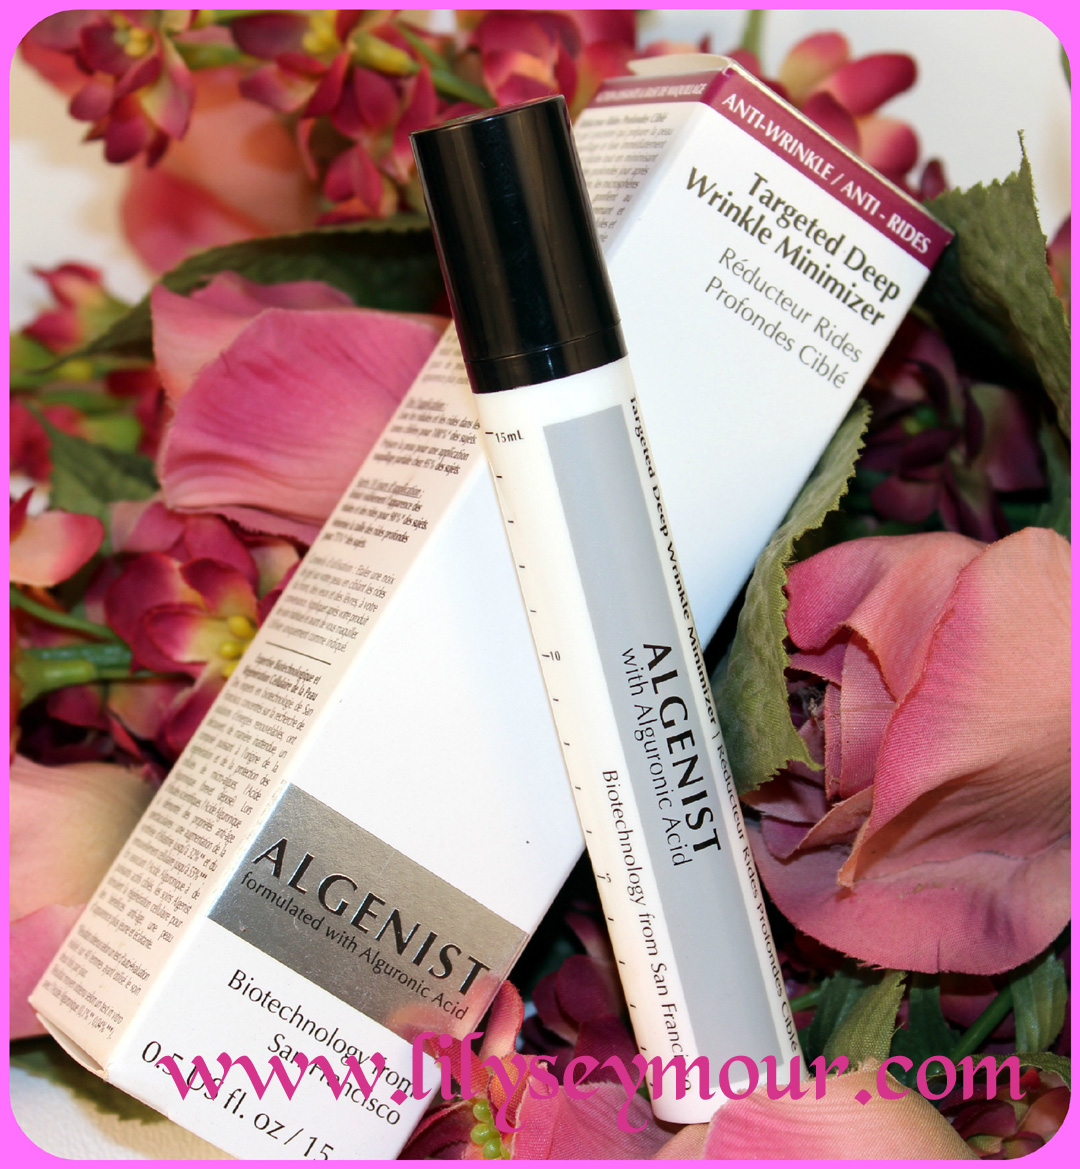 Targeted Deep Wrinkle Minimizer by algenist #15